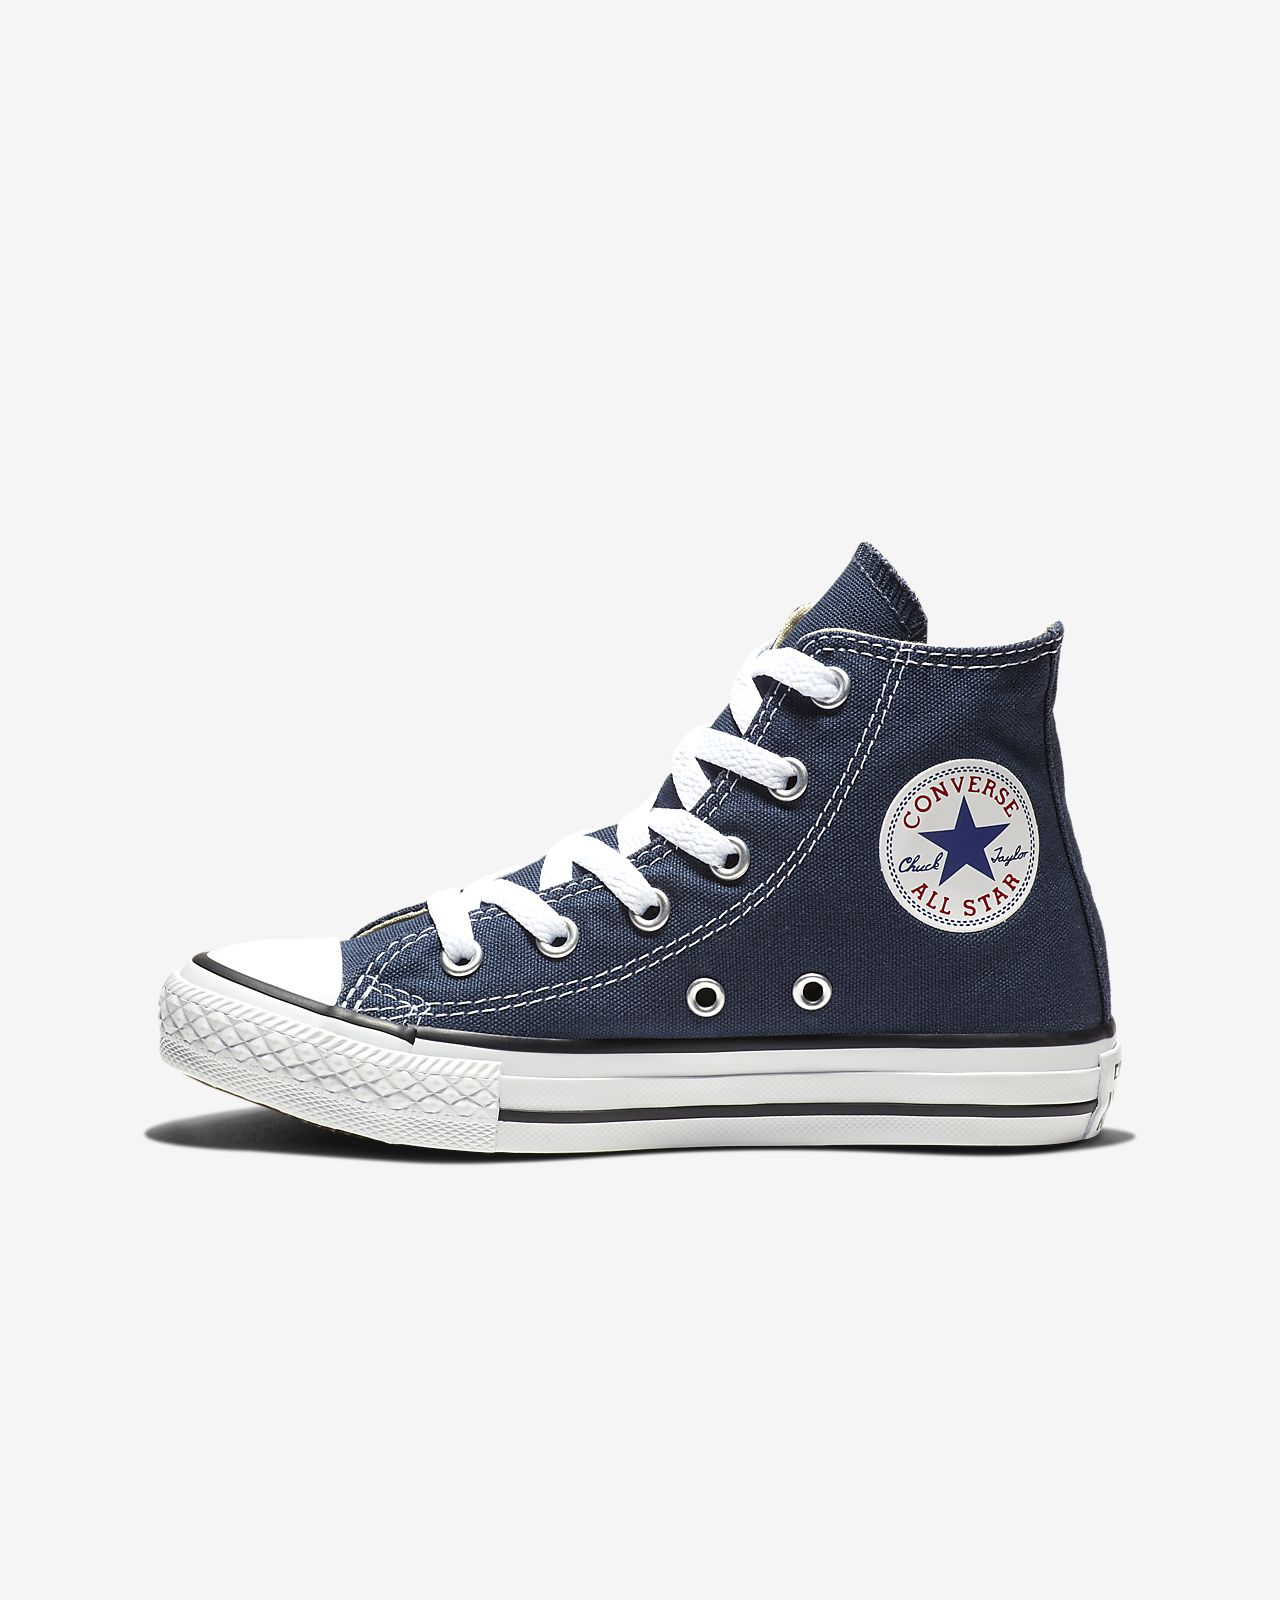 2b68d1523865 Converse Chuck Taylor All Star High Top (10.5c-3y) Little Kids  Shoe ...